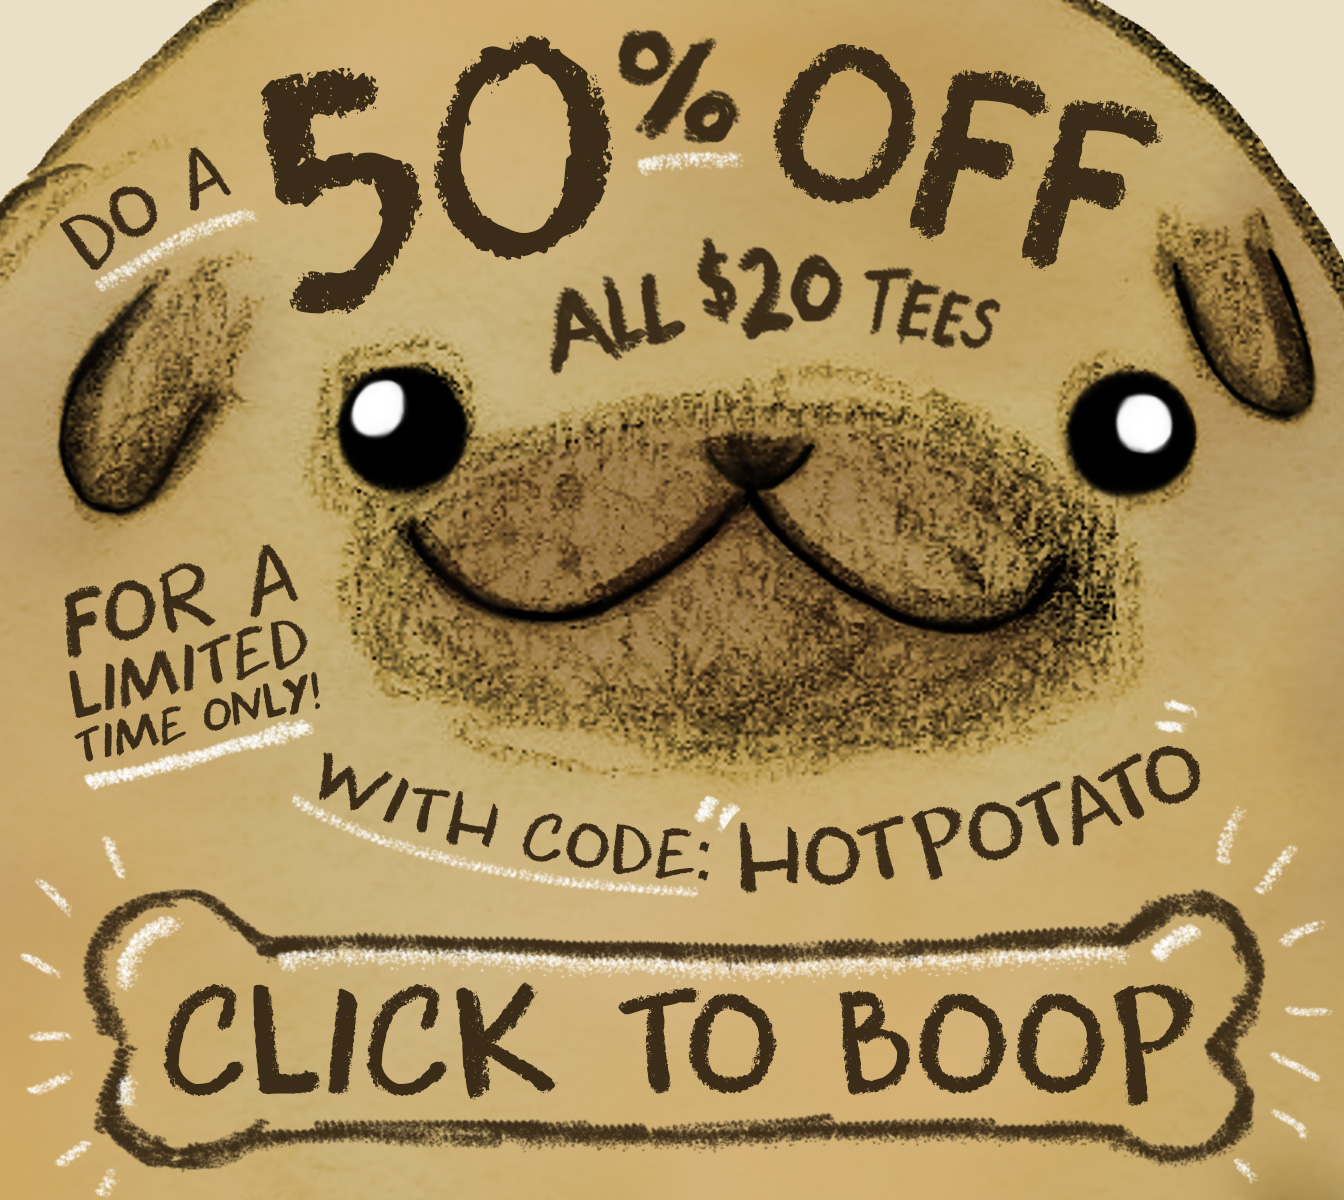 Get 50% off all $20 tees for a limited time with code HOTPOTATO